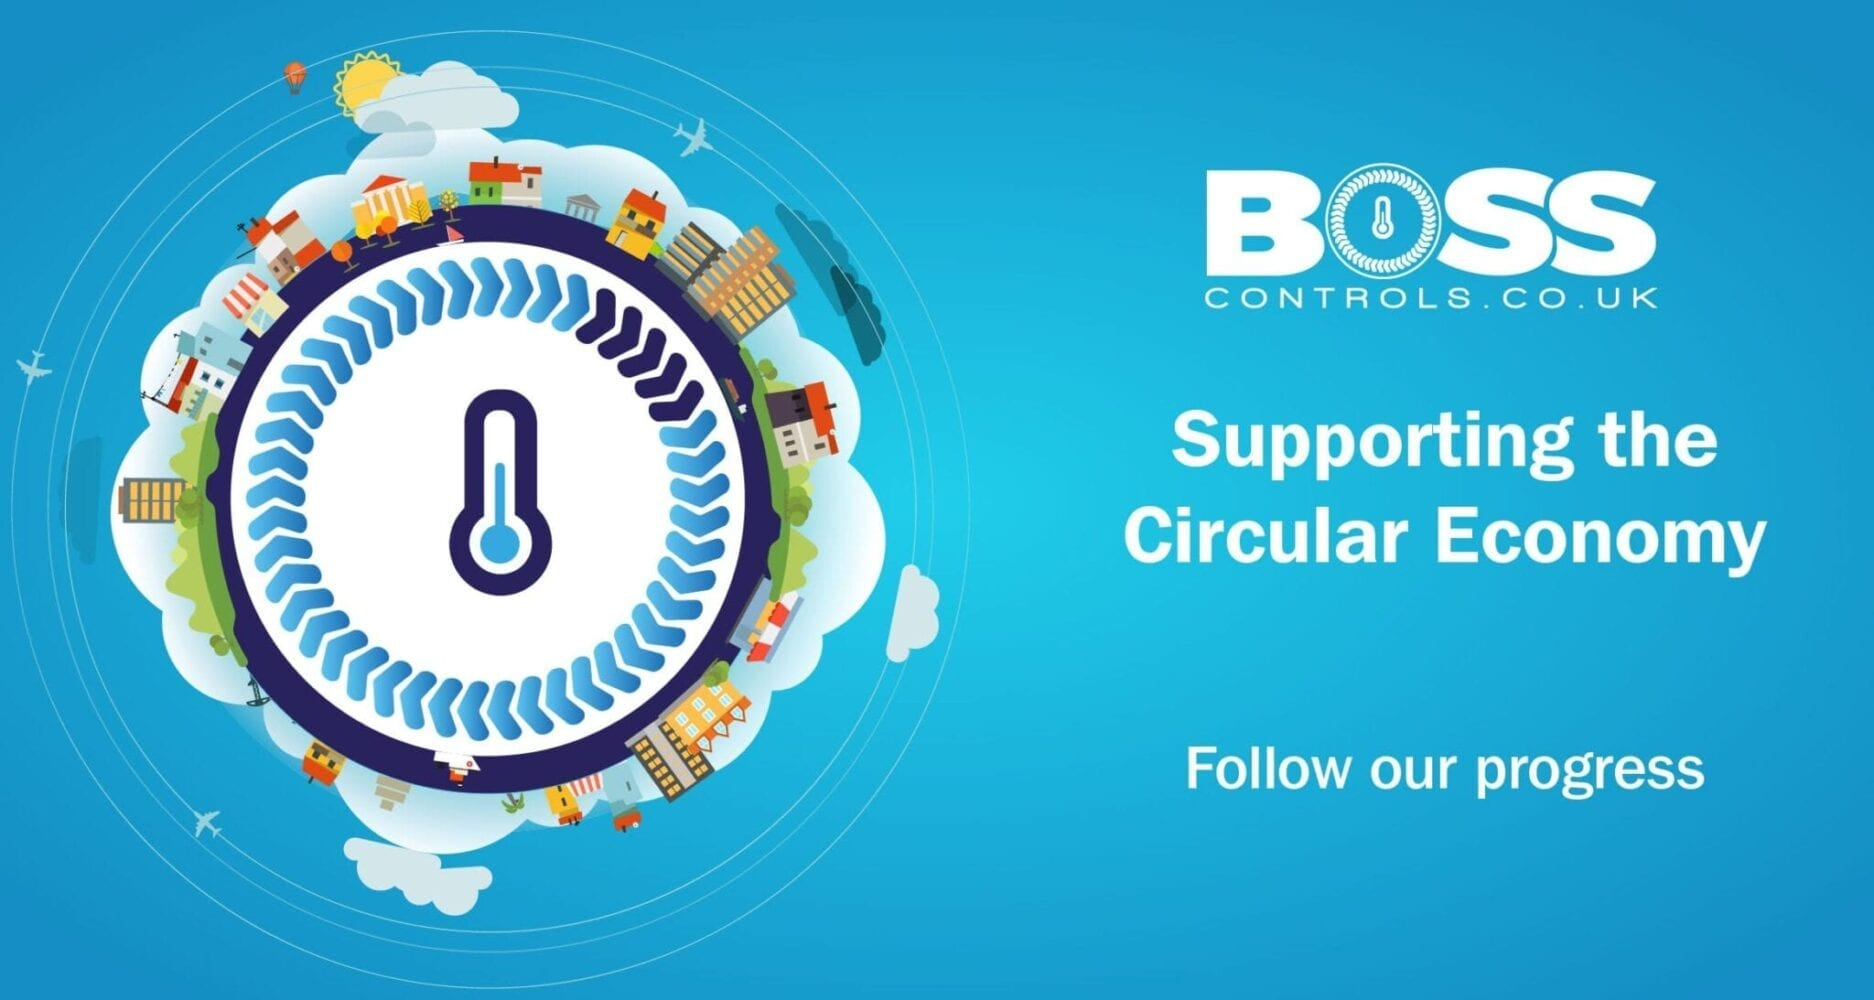 Boss Controls supporting the Circular Economy